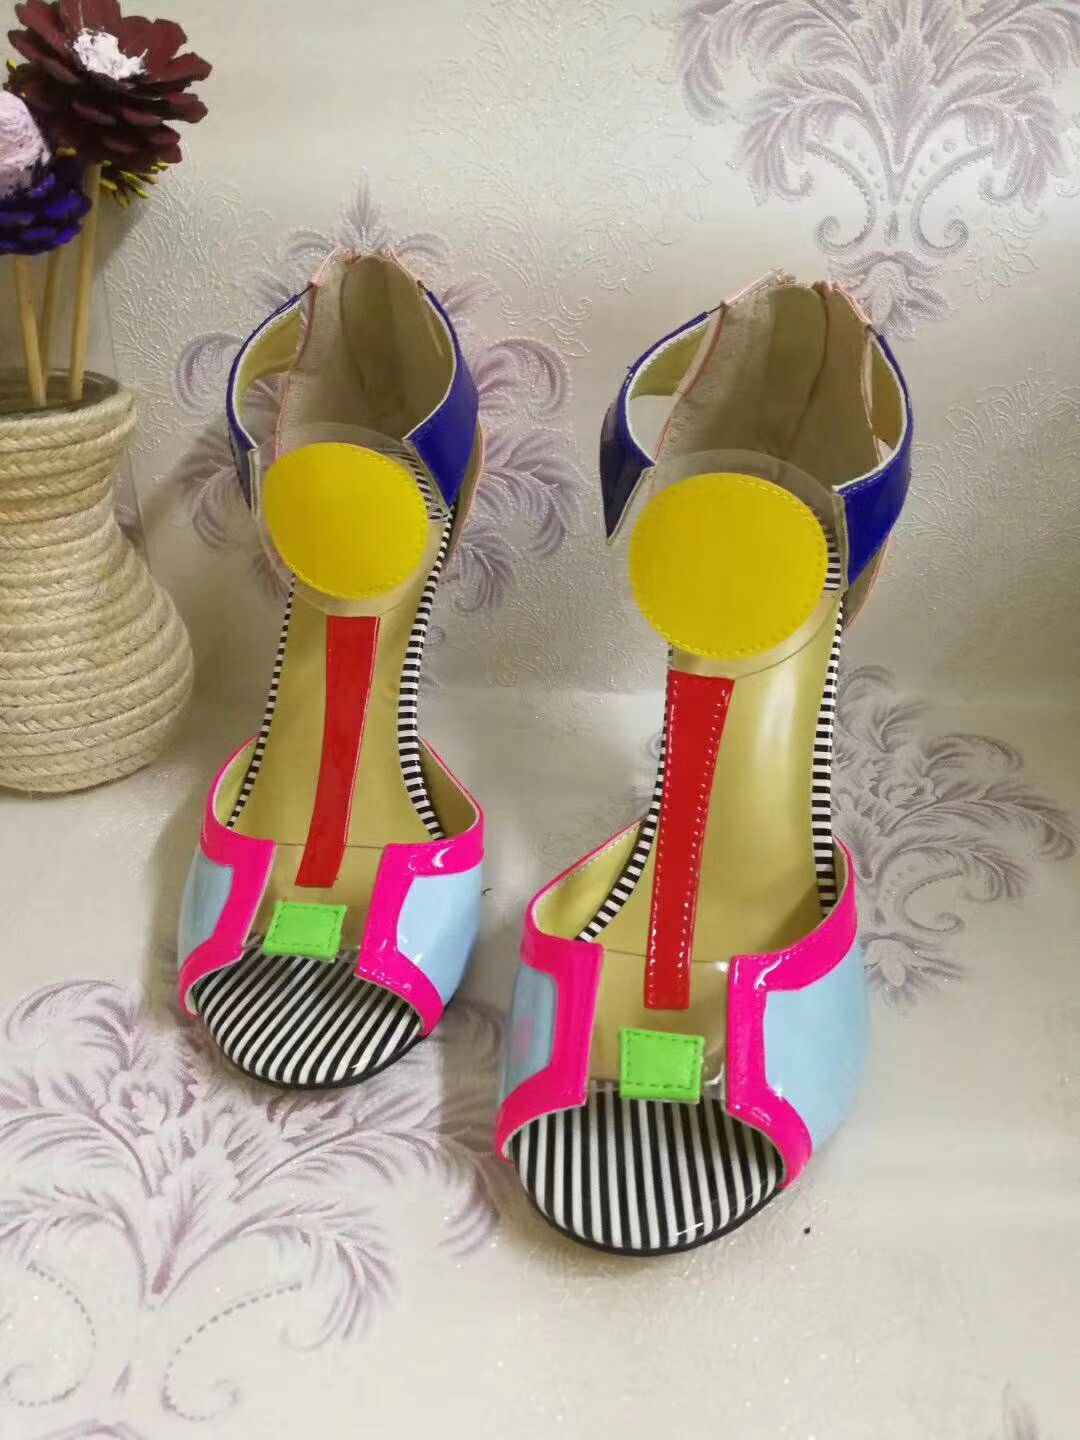 Summer Ladies Stripe High-heeled Mixed Contrast Colors Sandals Sexy Peep Toe High Heels Gladiator PVC Patched Sandals ShoesSummer Ladies Stripe High-heeled Mixed Contrast Colors Sandals Sexy Peep Toe High Heels Gladiator PVC Patched Sandals Shoes